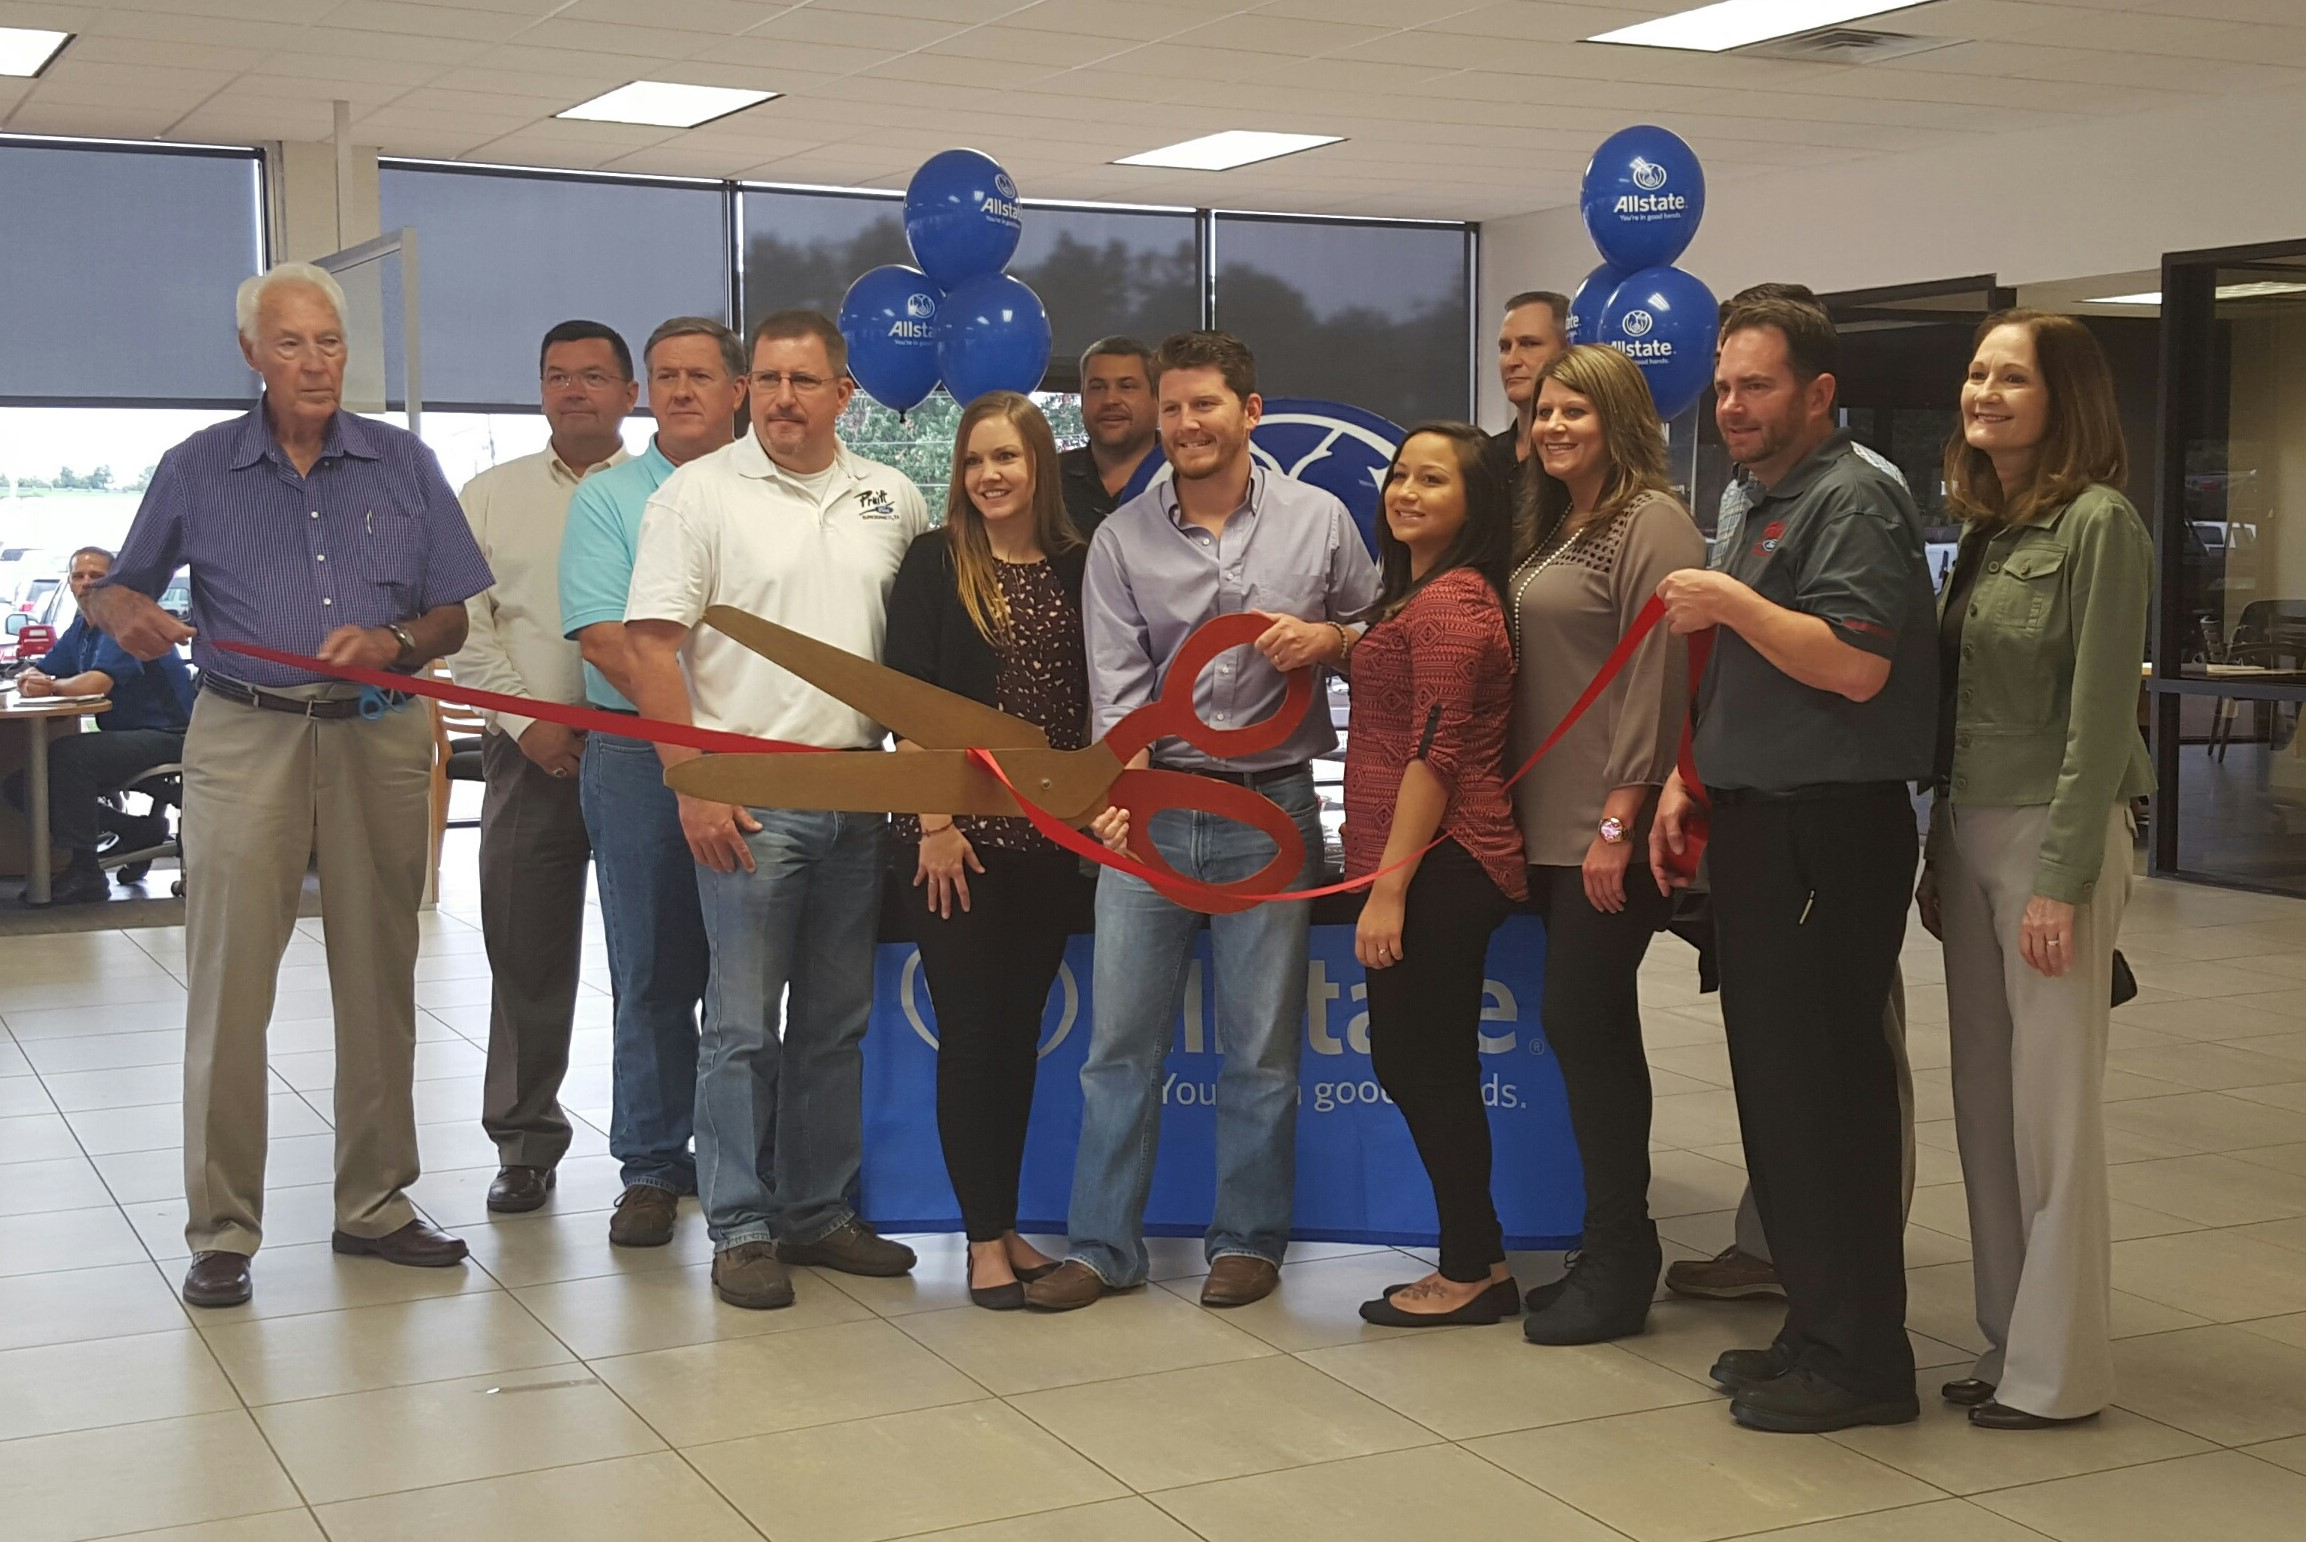 1015_Allstate-Lipscomb Ribbon Cutting